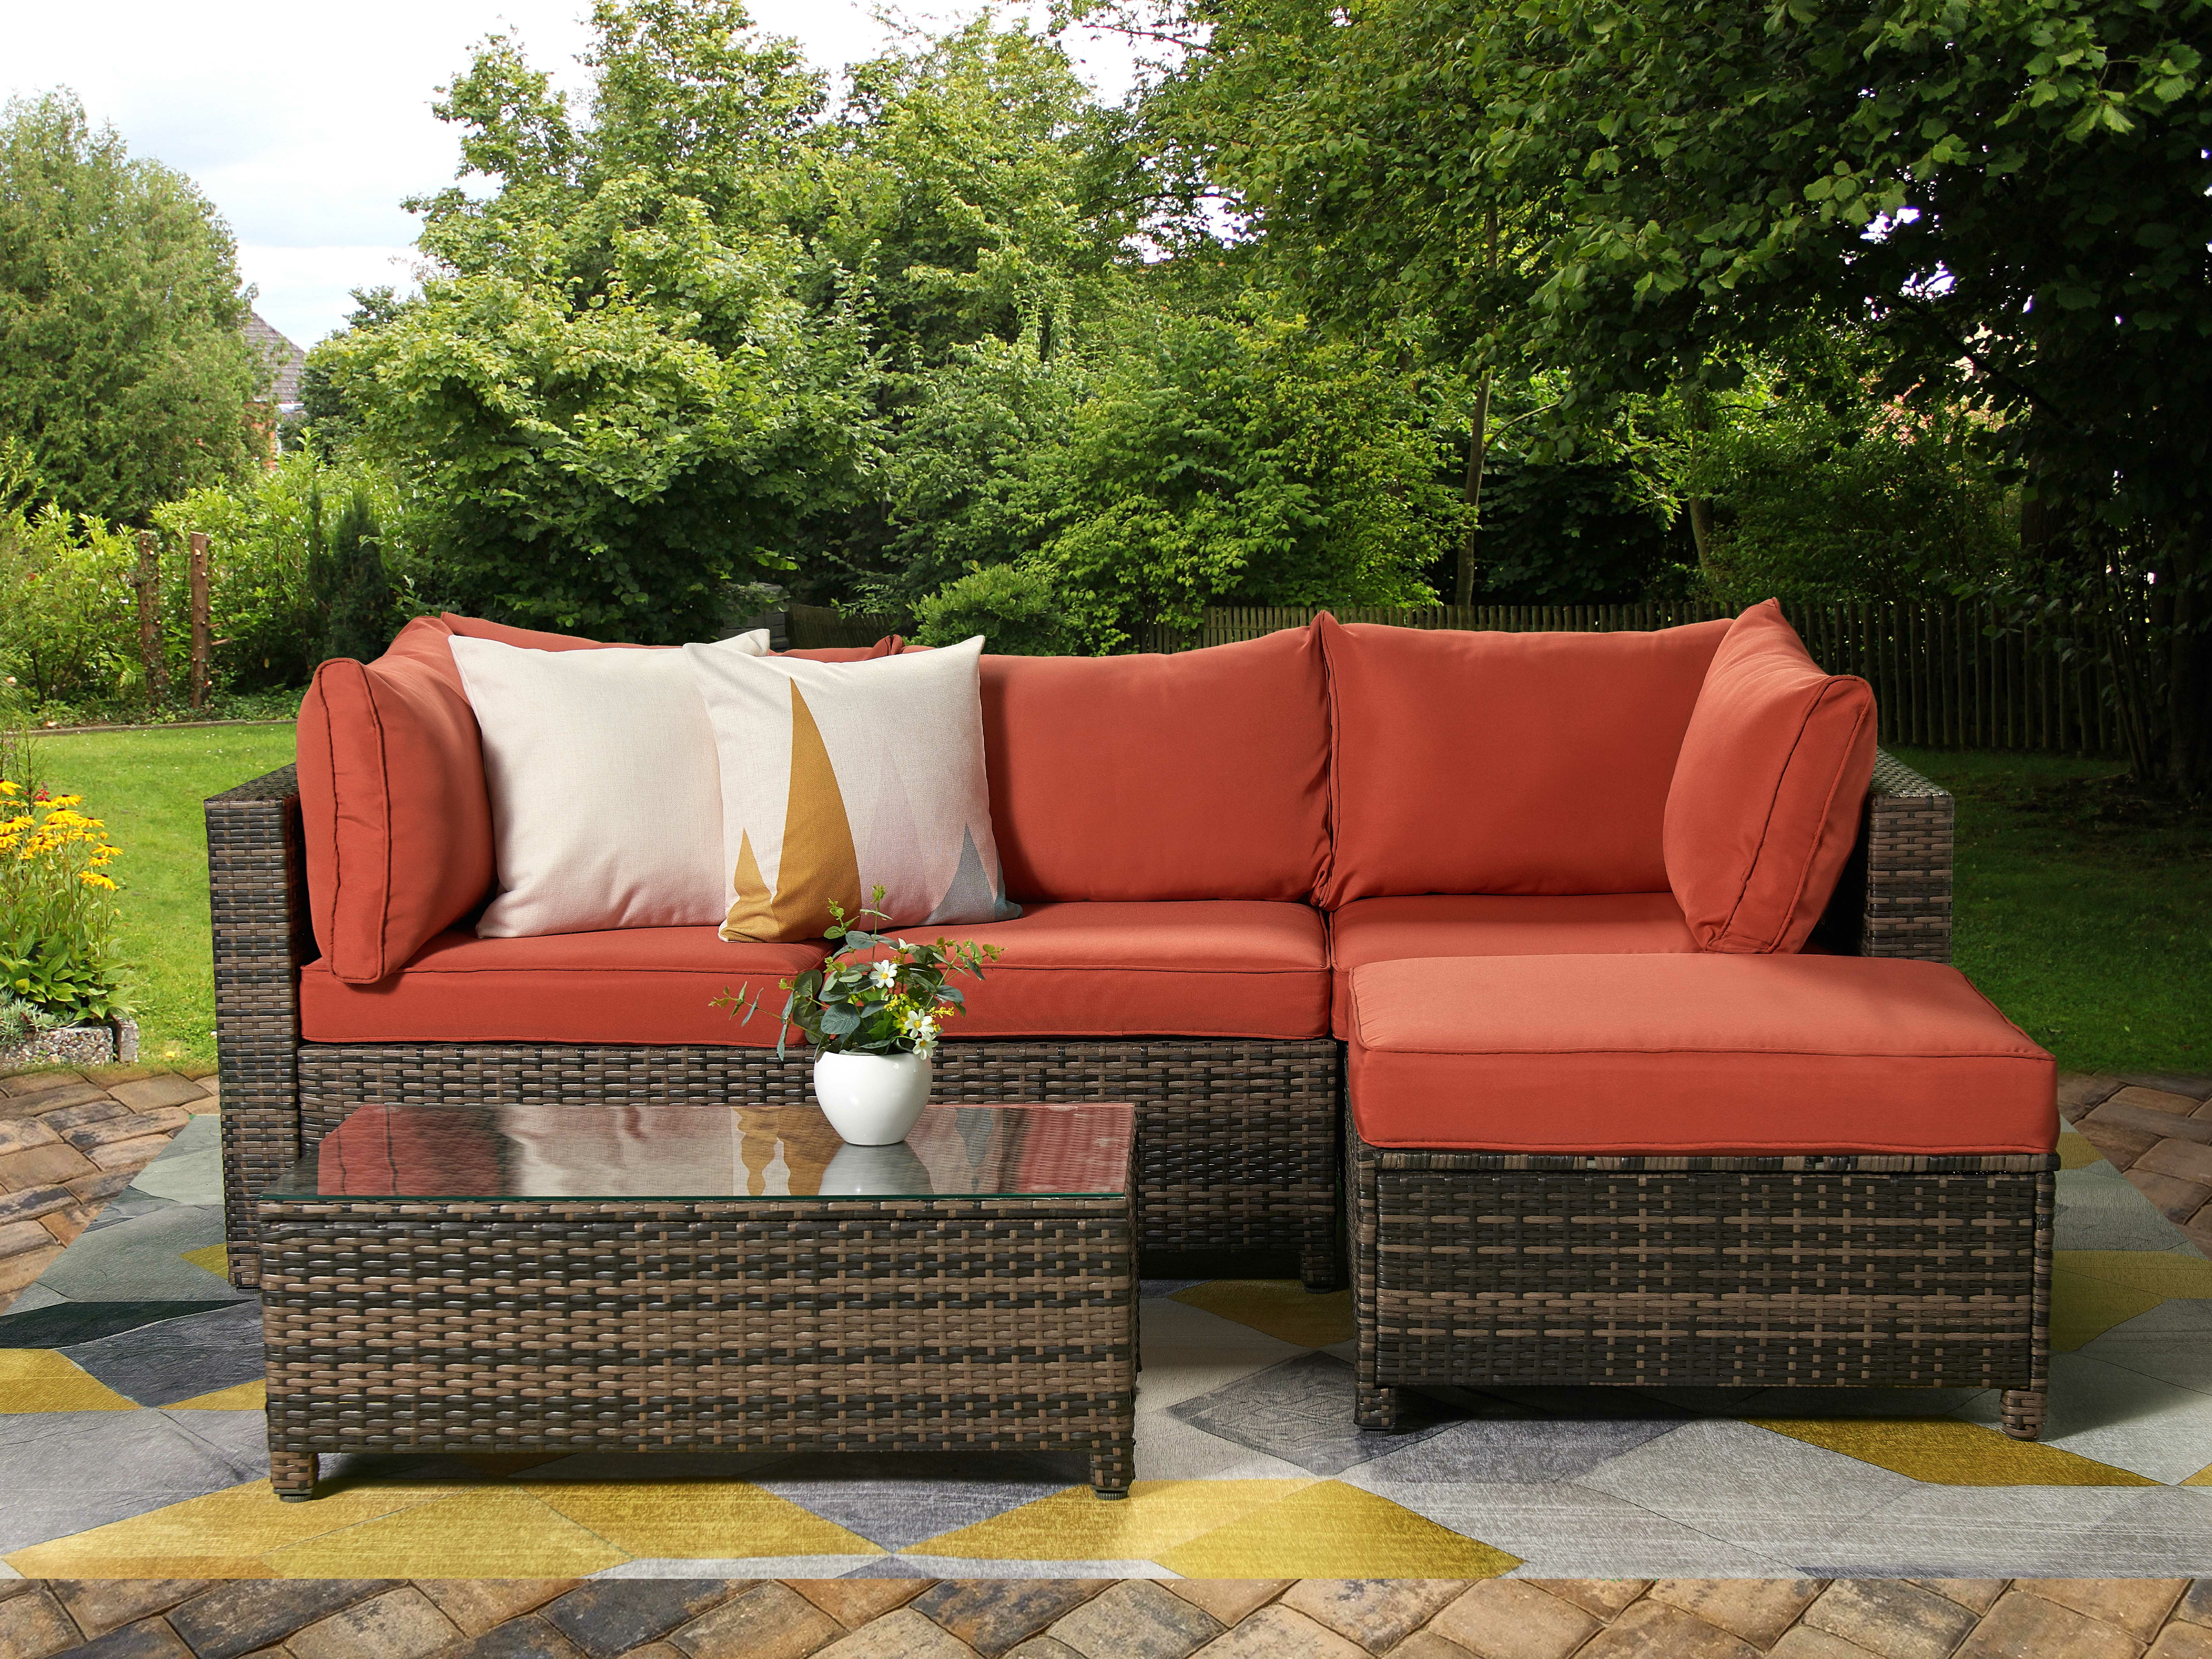 Seaham Patio Sectionals With Cushions In Popular Roni Patio Sectional With Cushions (View 12 of 20)